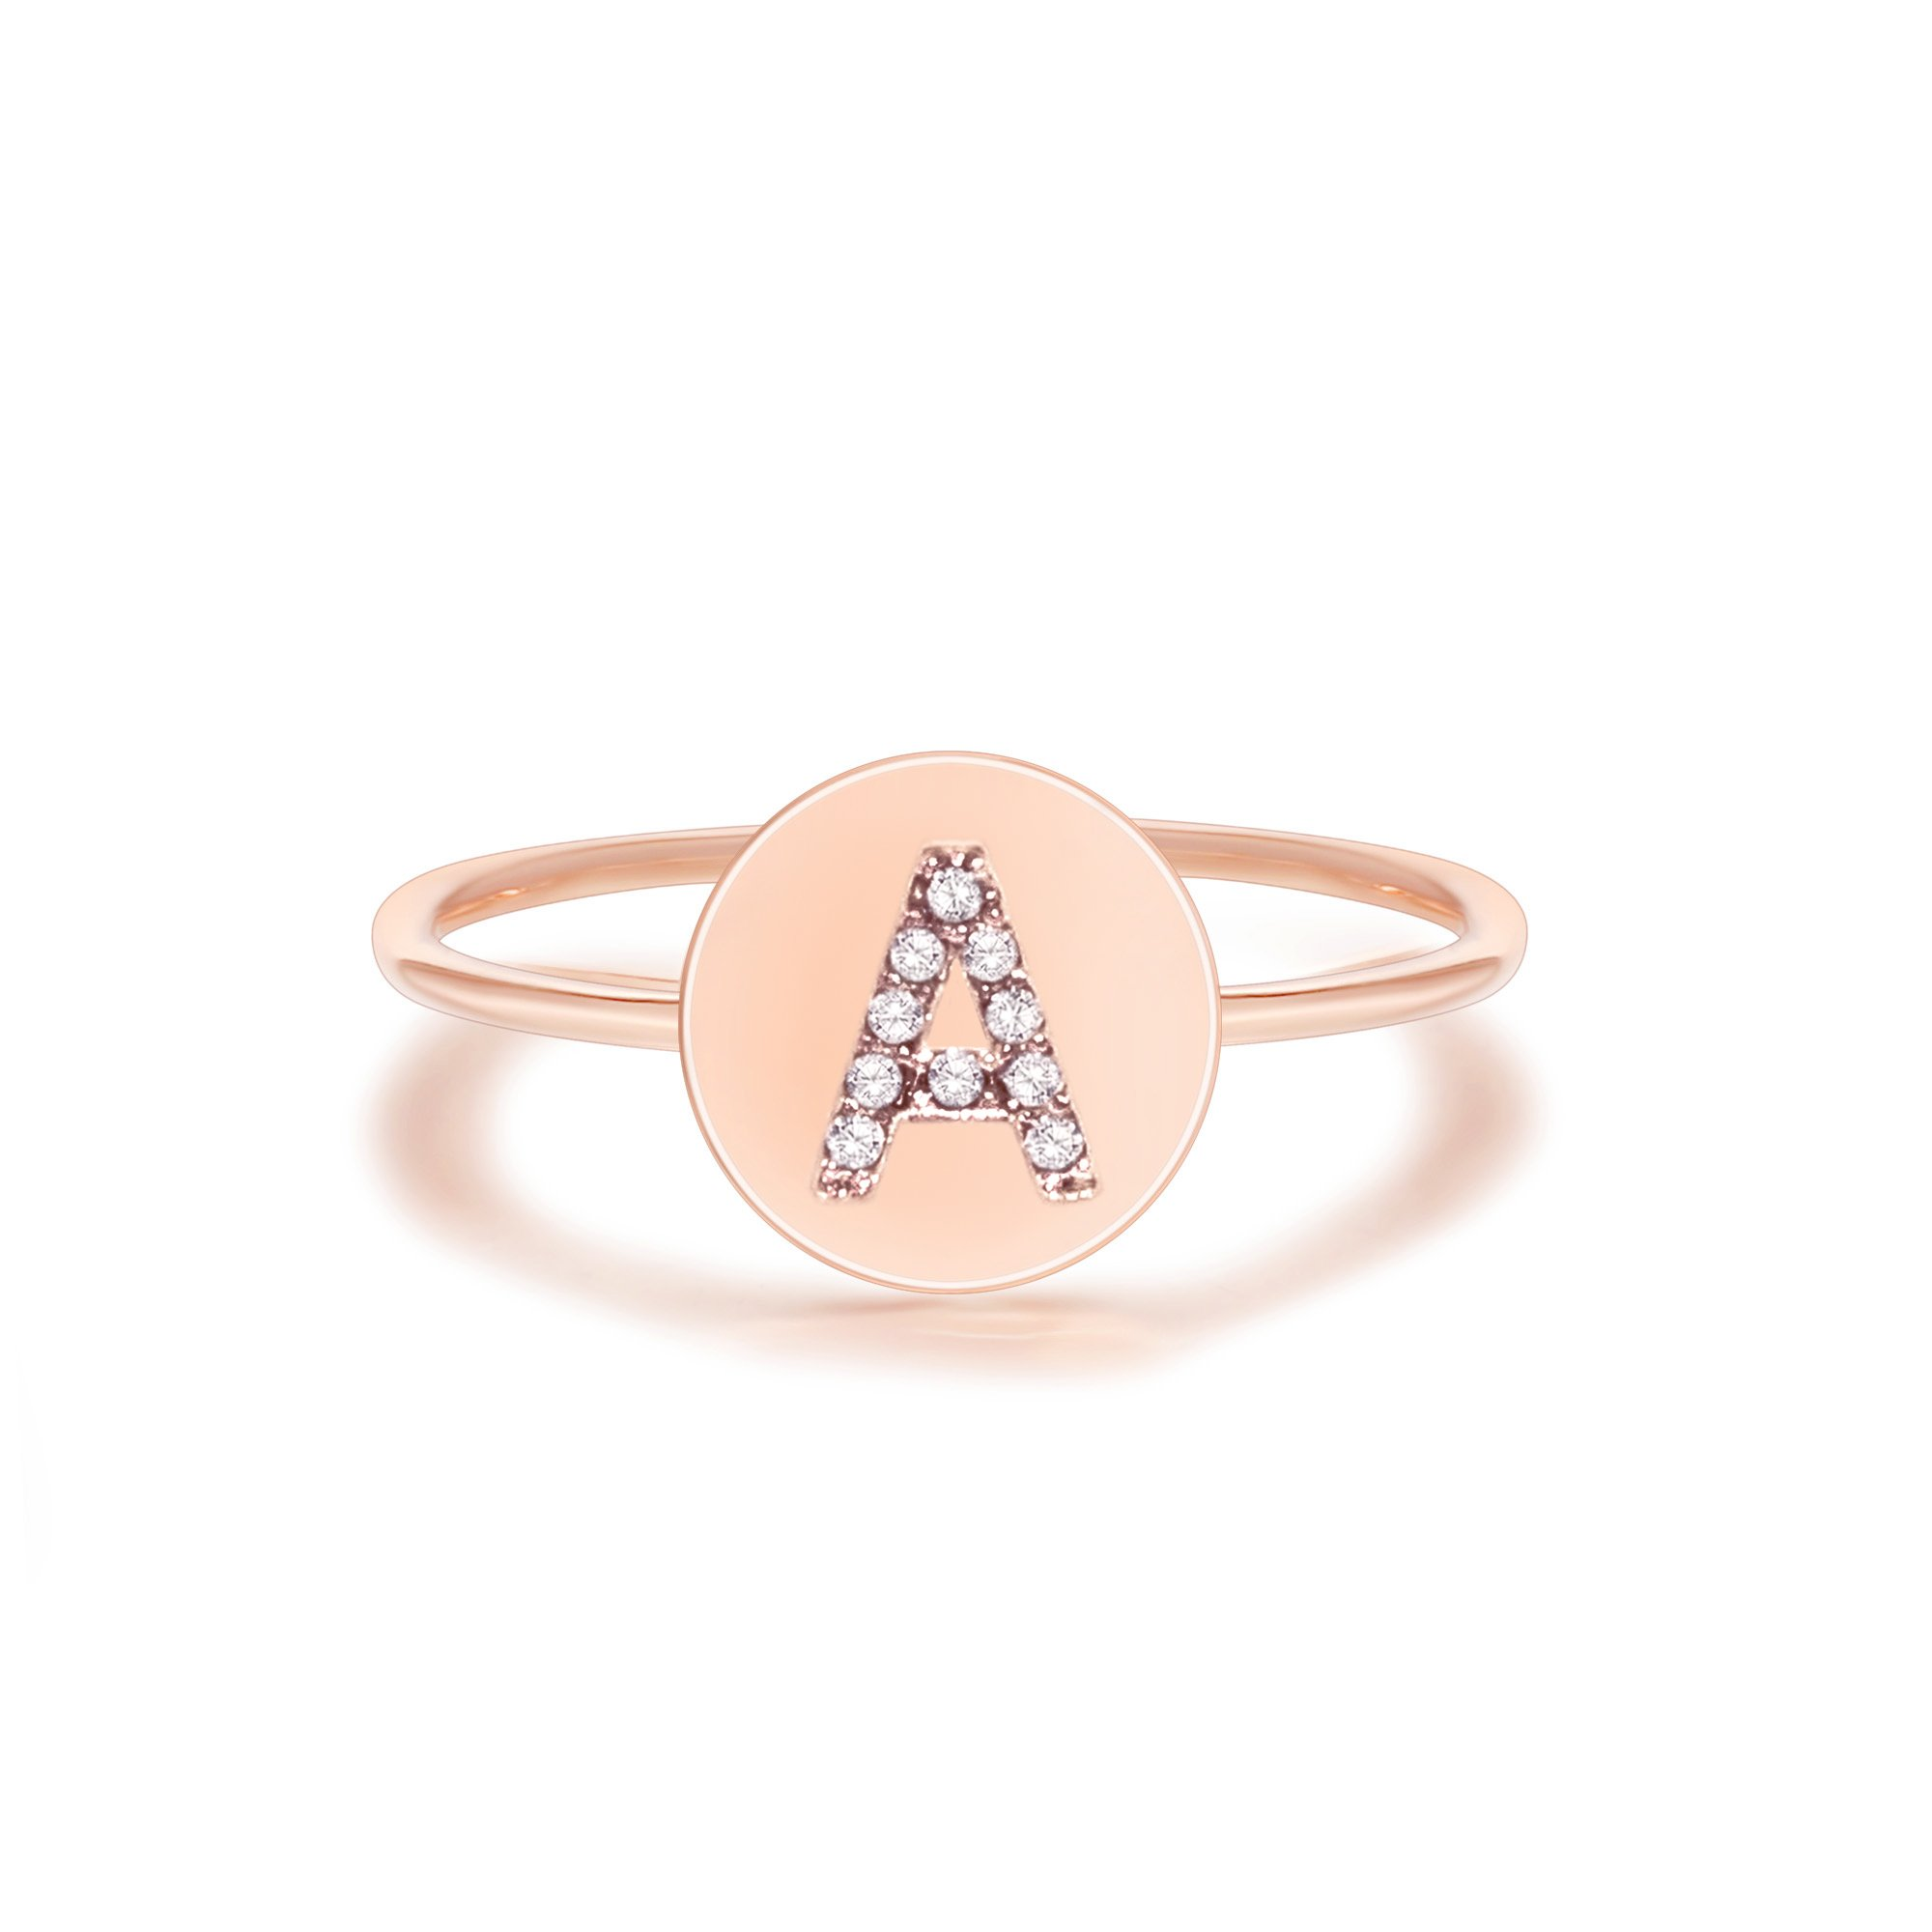 PAVOI 14K Rose Gold Plated Initial Ring Stackable Rings for Women | Fashion Rings - A Ring by PAVOI